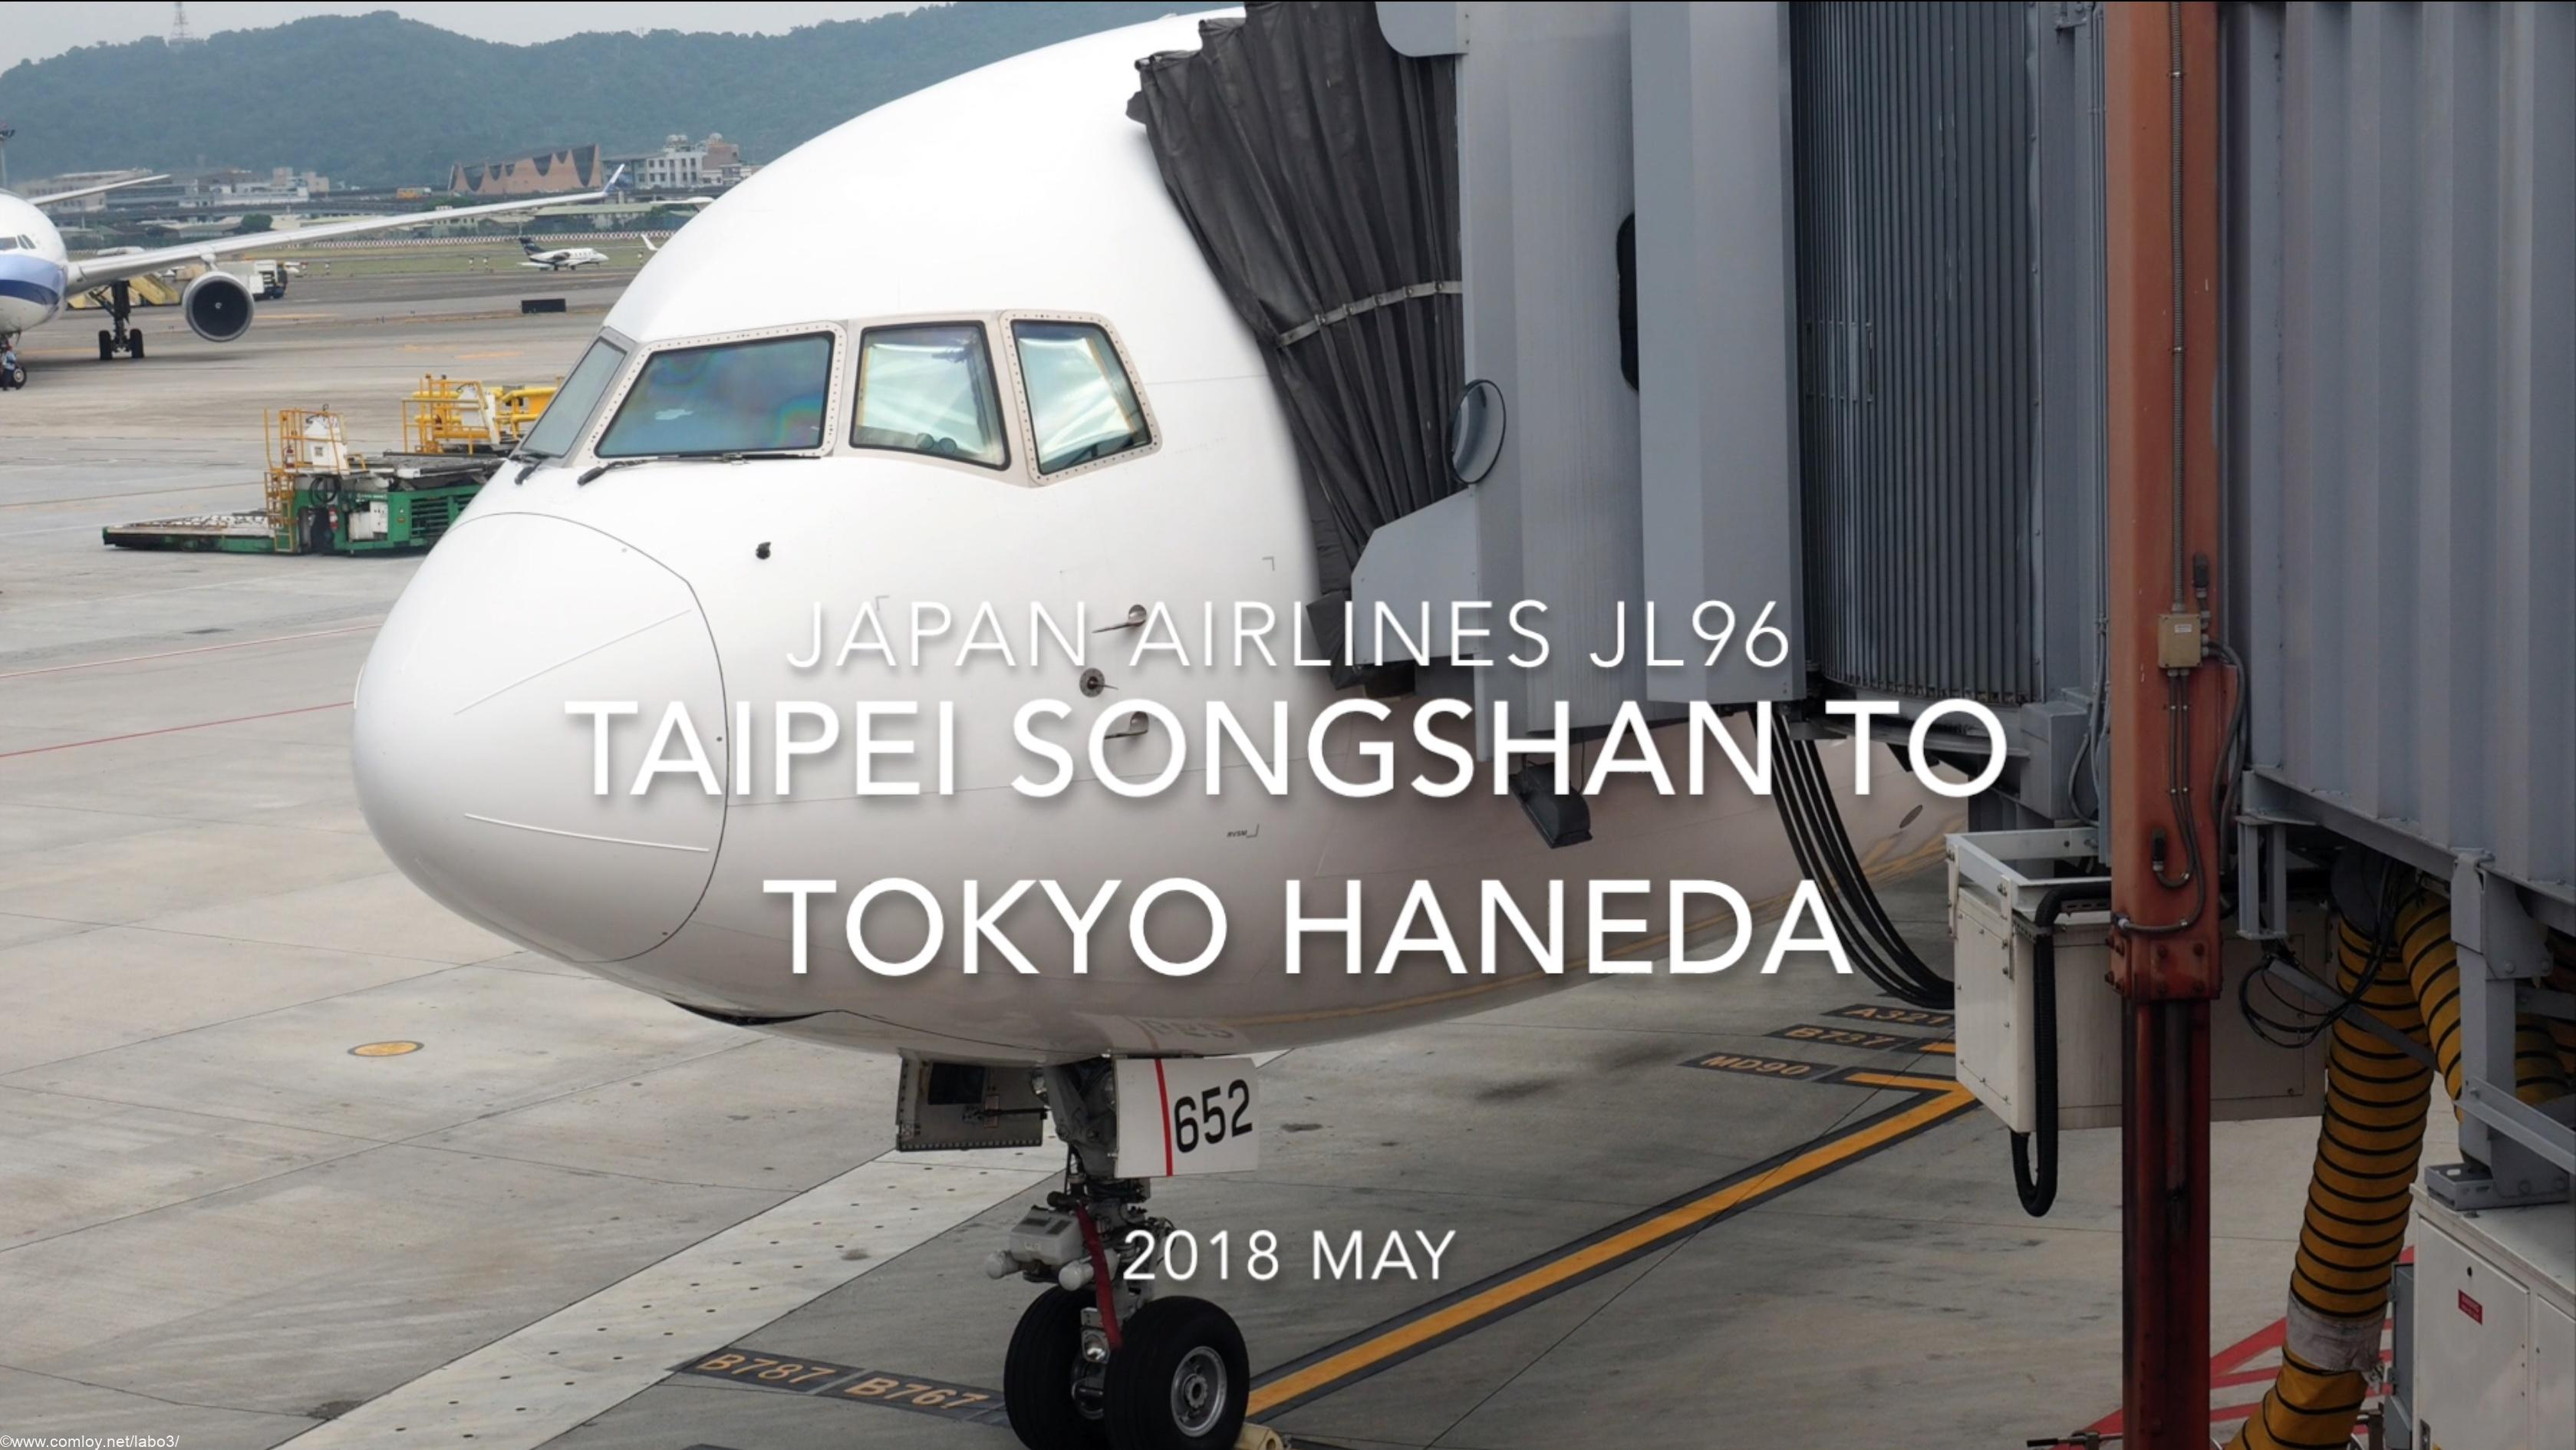 【Flight Report】 JAPAN AIRLINES JL96 TAIPEI Songshan to TOKYO HANEDA 2018 May 日本航空 台北 - 羽田 搭乗記